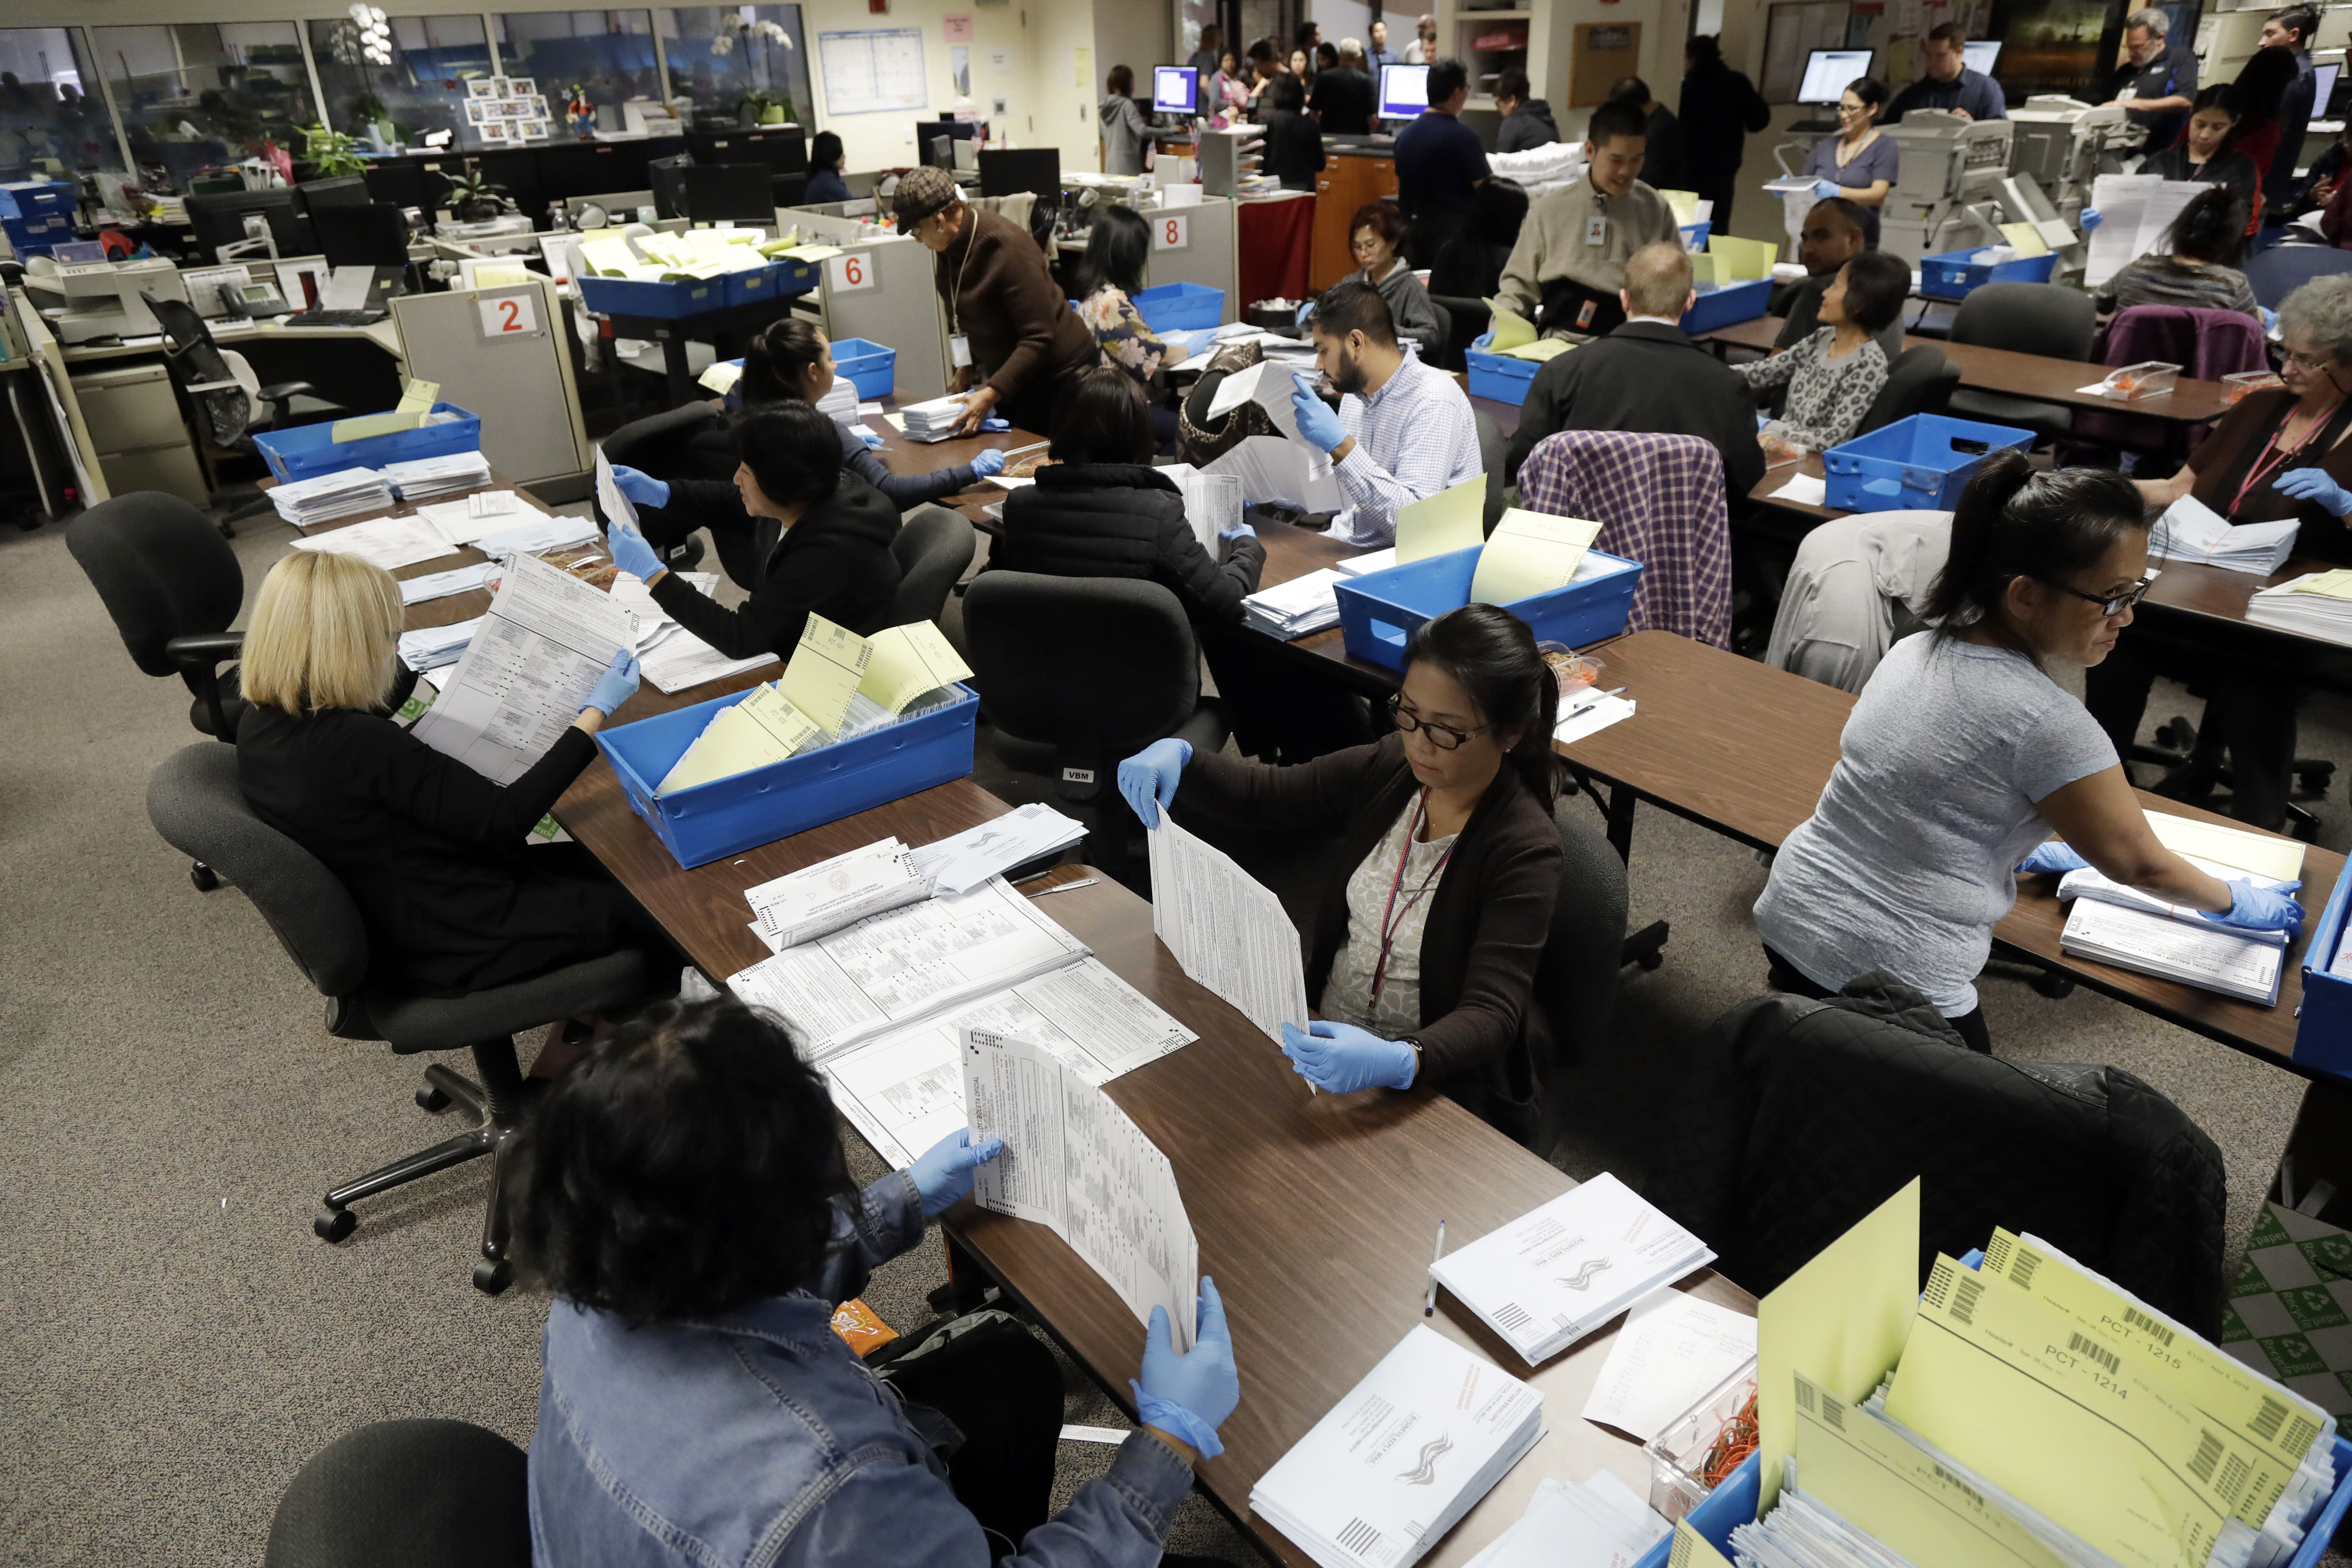 FILE - This Nov. 4, 2016, file photo shows mail-in ballots being sorted at the Santa Clara County Registrar of Voters in San Jose, Calif. Over 100,000 mail-in ballots were rejected by election officials in California's March 2020 presidential primary, highlighting a glaring gap in the effort to ensure every vote is counted as a national dispute rages over the integrity of vote-by-mail elections. (AP Photo/Marcio Jose Sanchez, File)